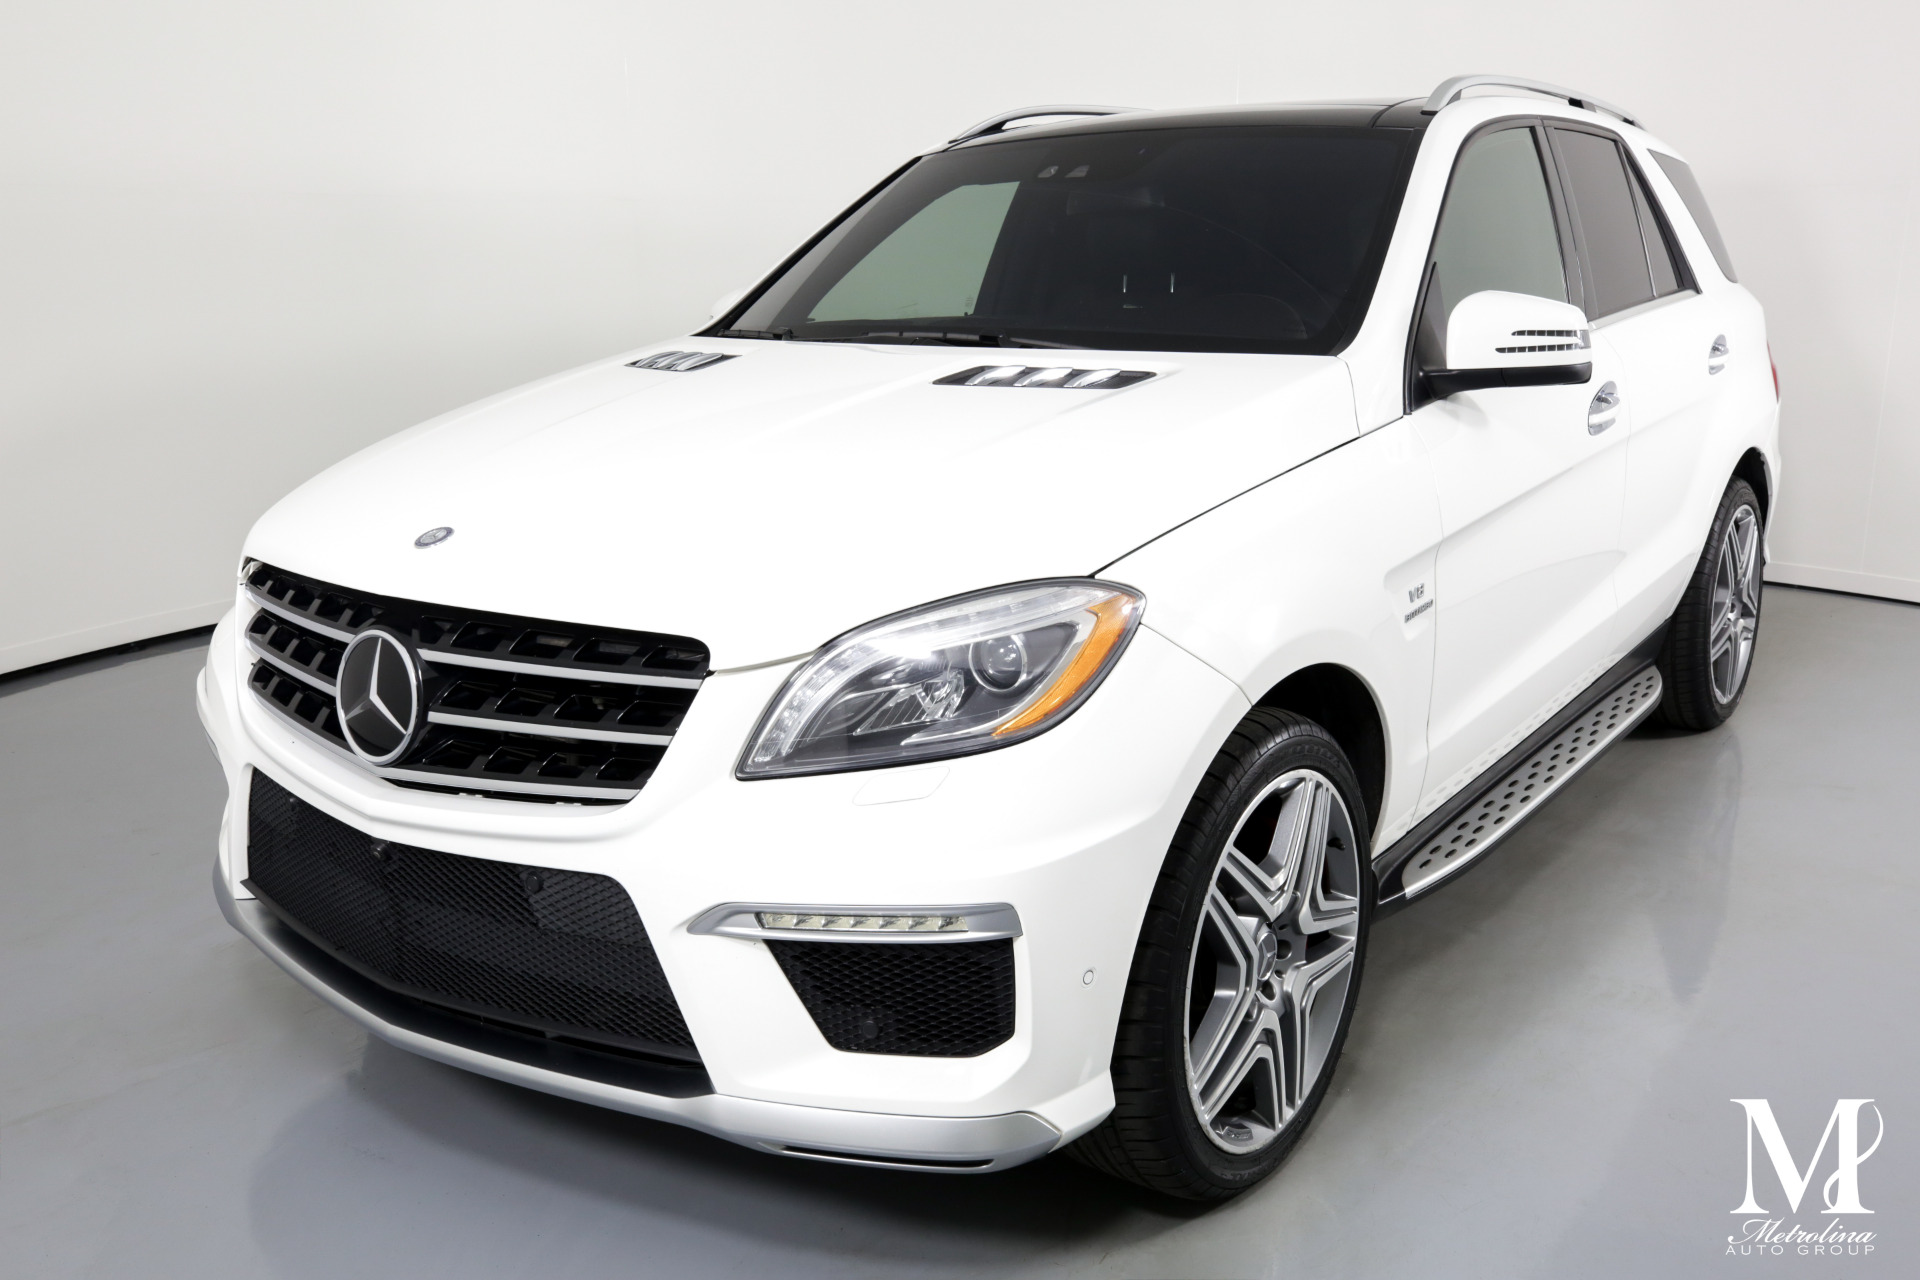 Used 2015 Mercedes-Benz M-Class ML 63 AMG for sale Sold at Metrolina Auto Group in Charlotte NC 28217 - 4